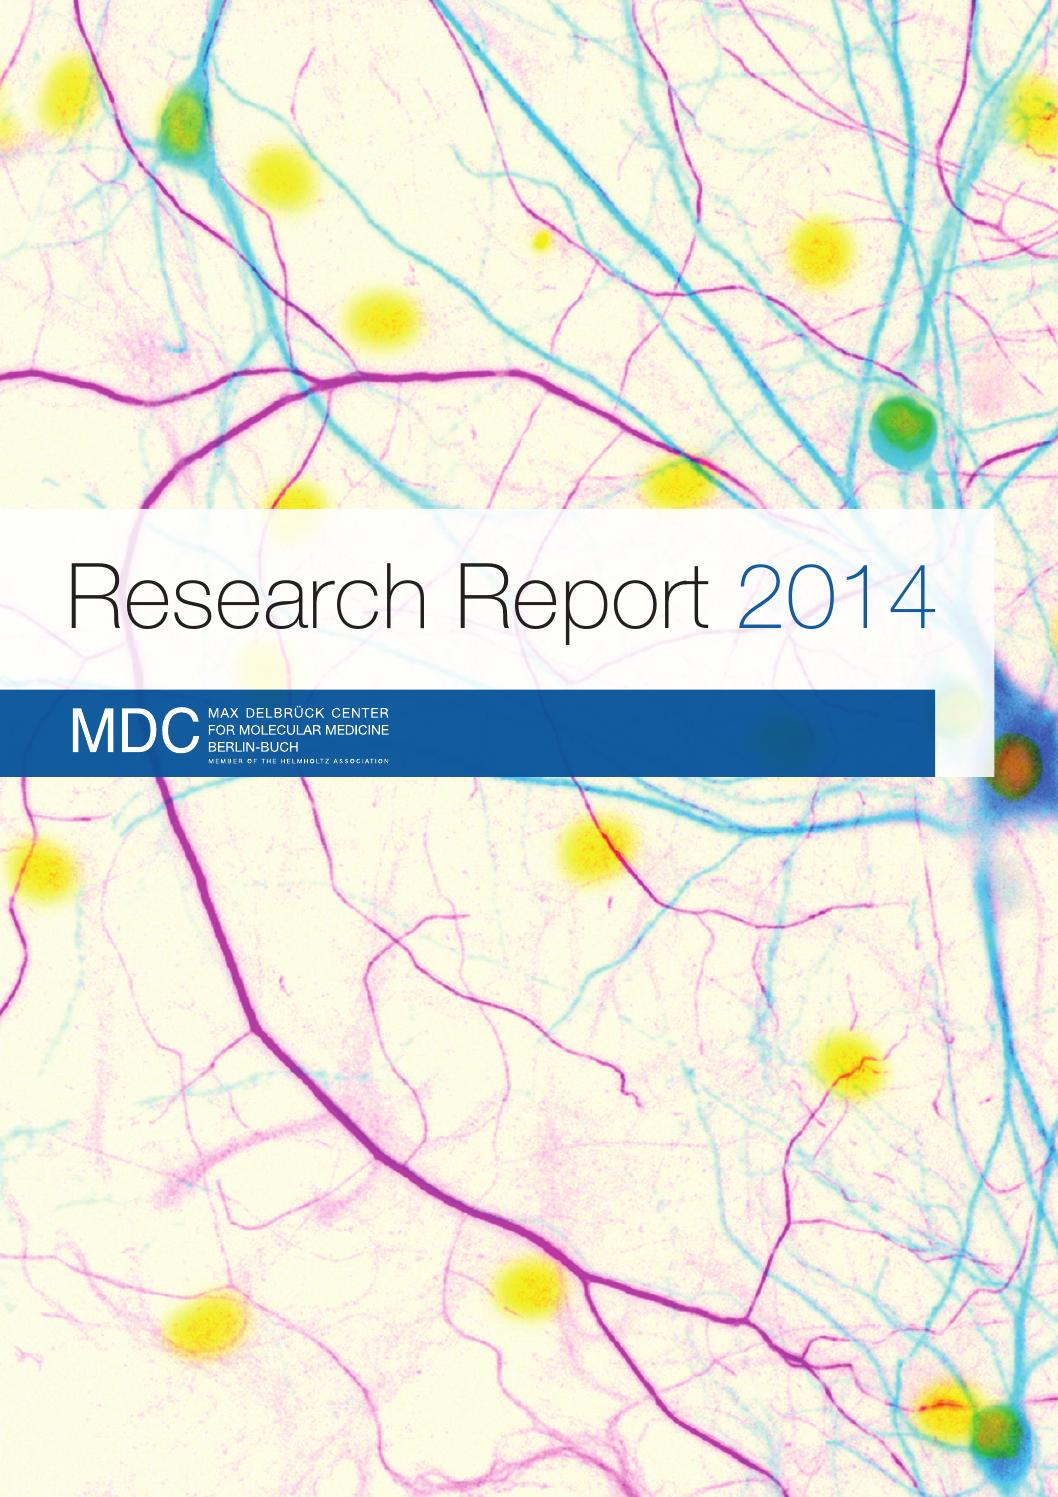 Mdc Research Report 2014 By Max Delbruck Center For Molecular